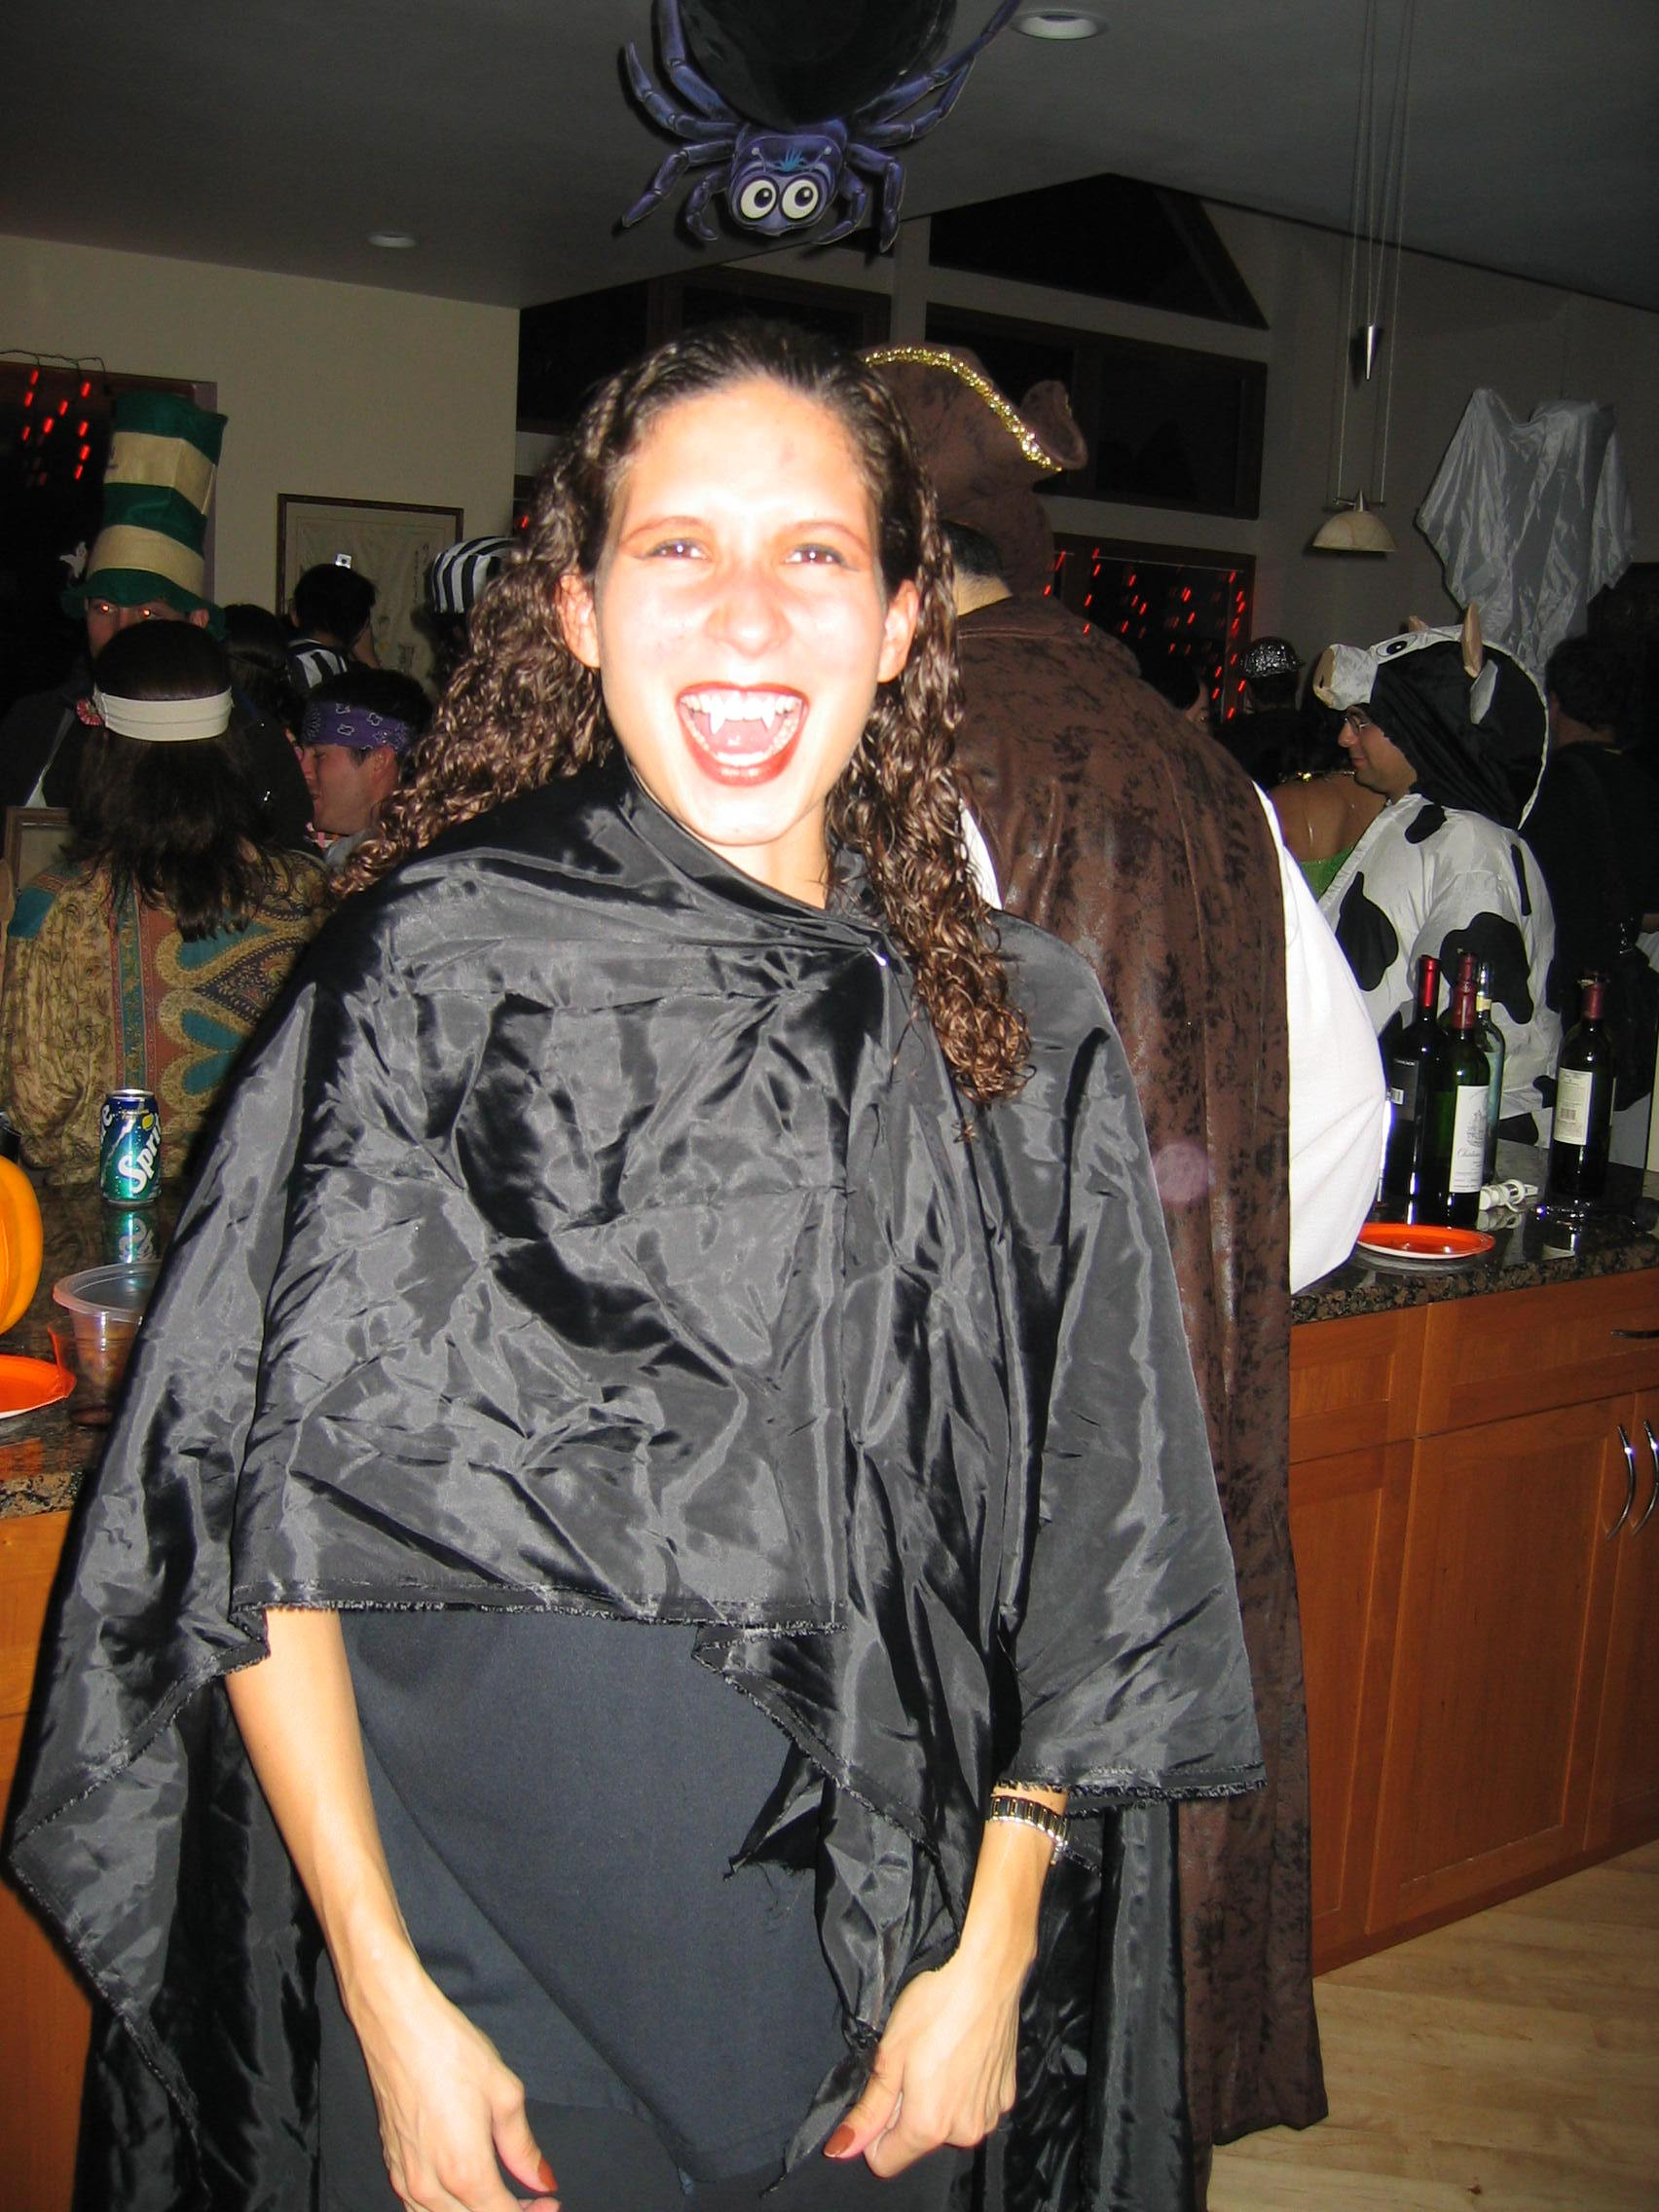 isds halloween party, october 2004